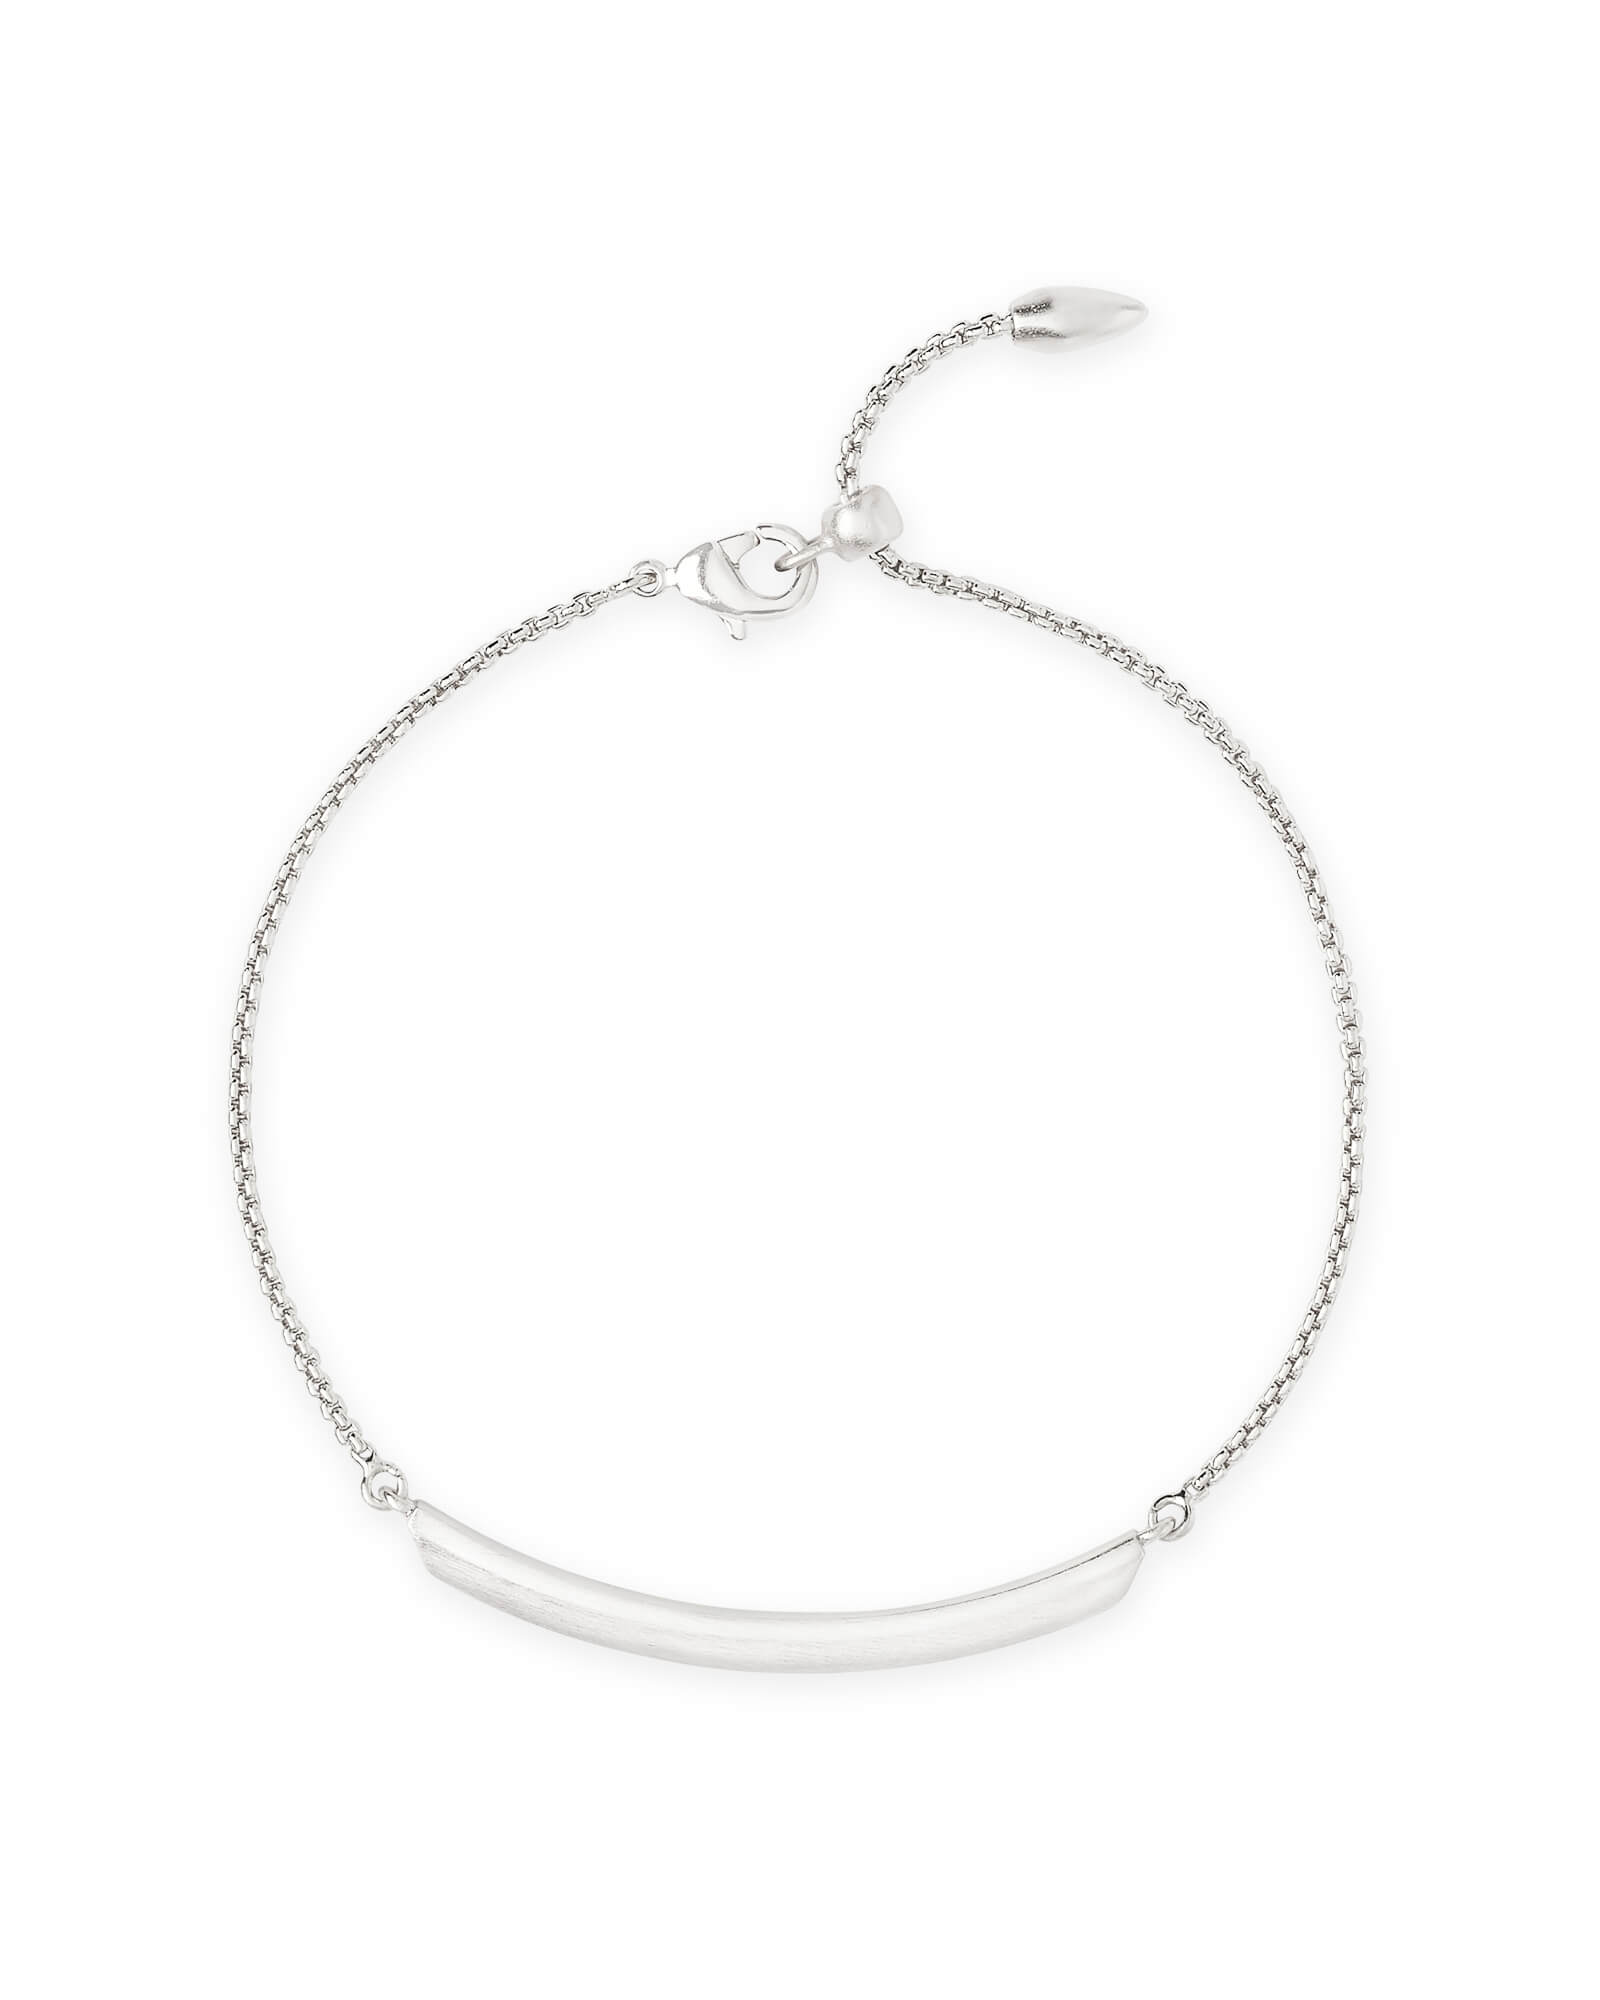 Eloise Ann Chain Bracelet in Bright Silver